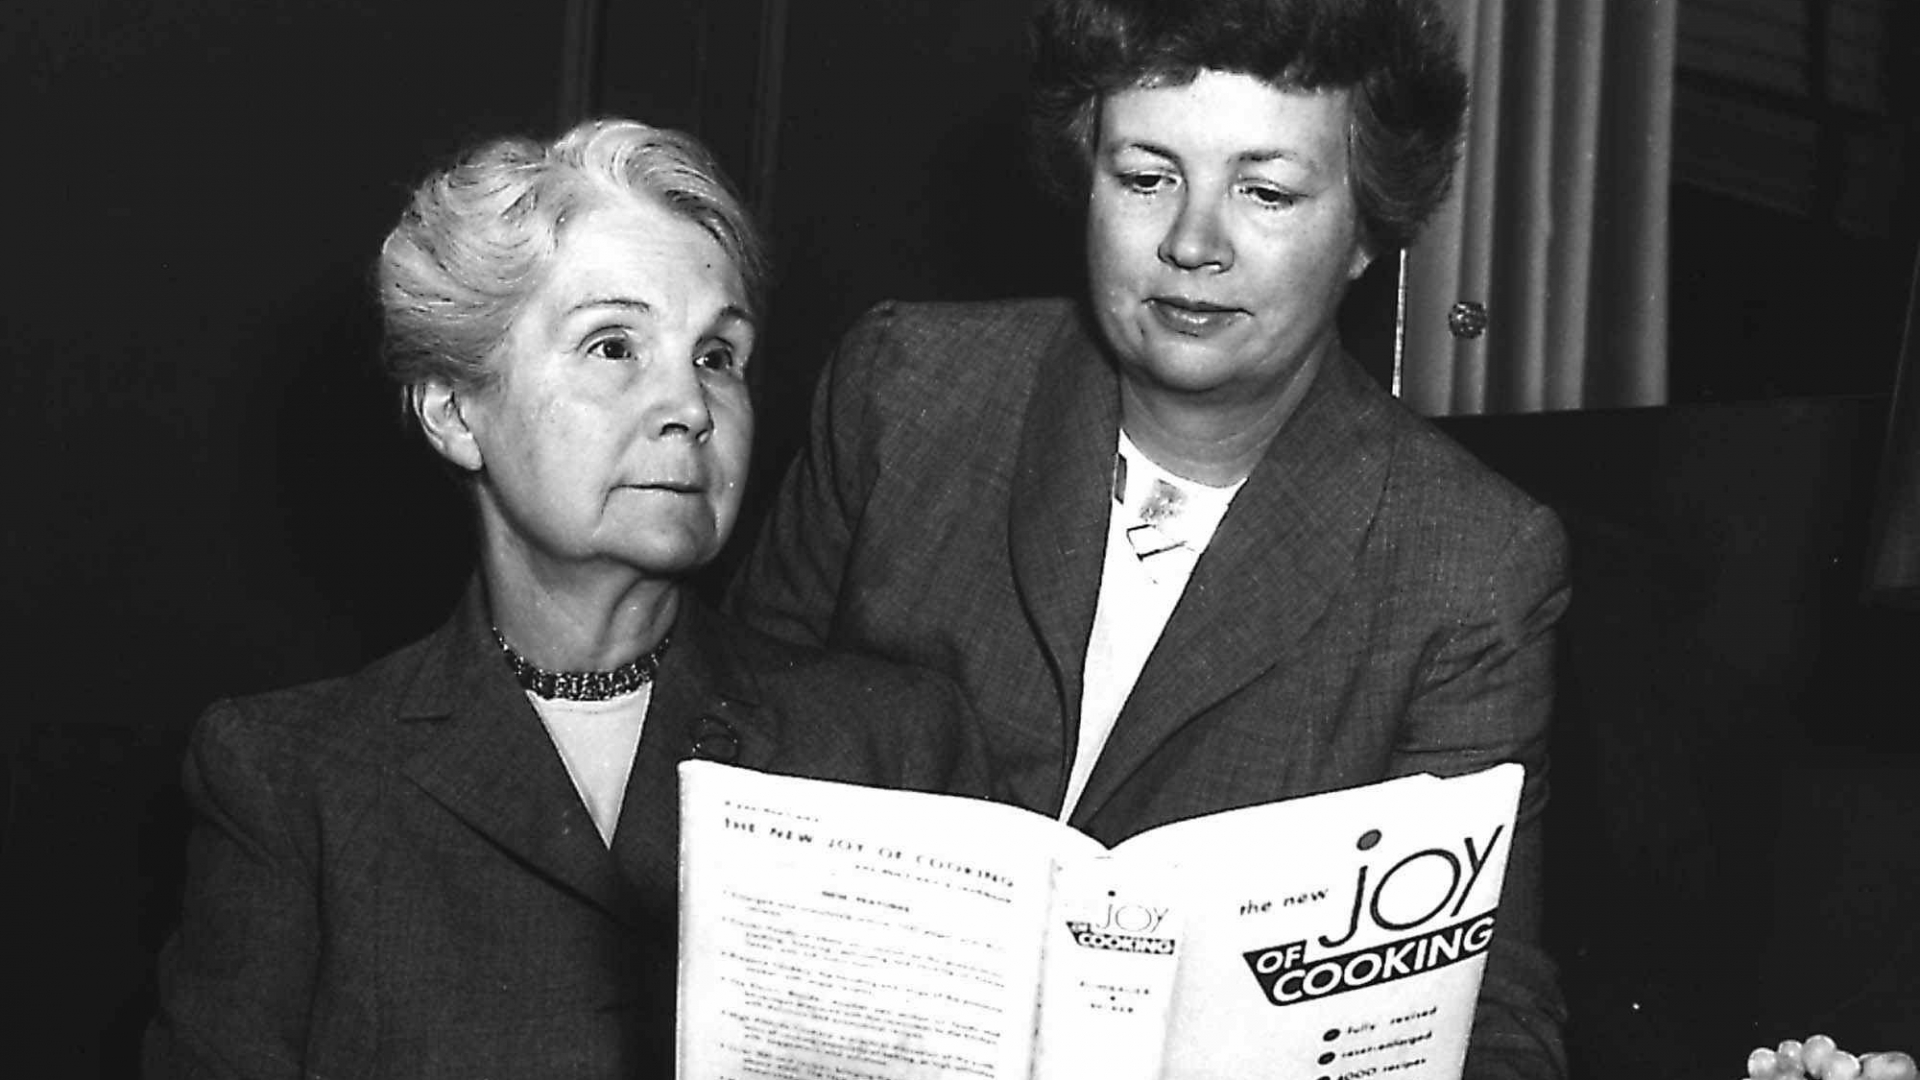 """Marion Rombauer Becker (right) looks over the """"Joy of Cooking"""" with her mother Irma Rombauer, in this 1951 photo. (Credit: AP Photo)"""